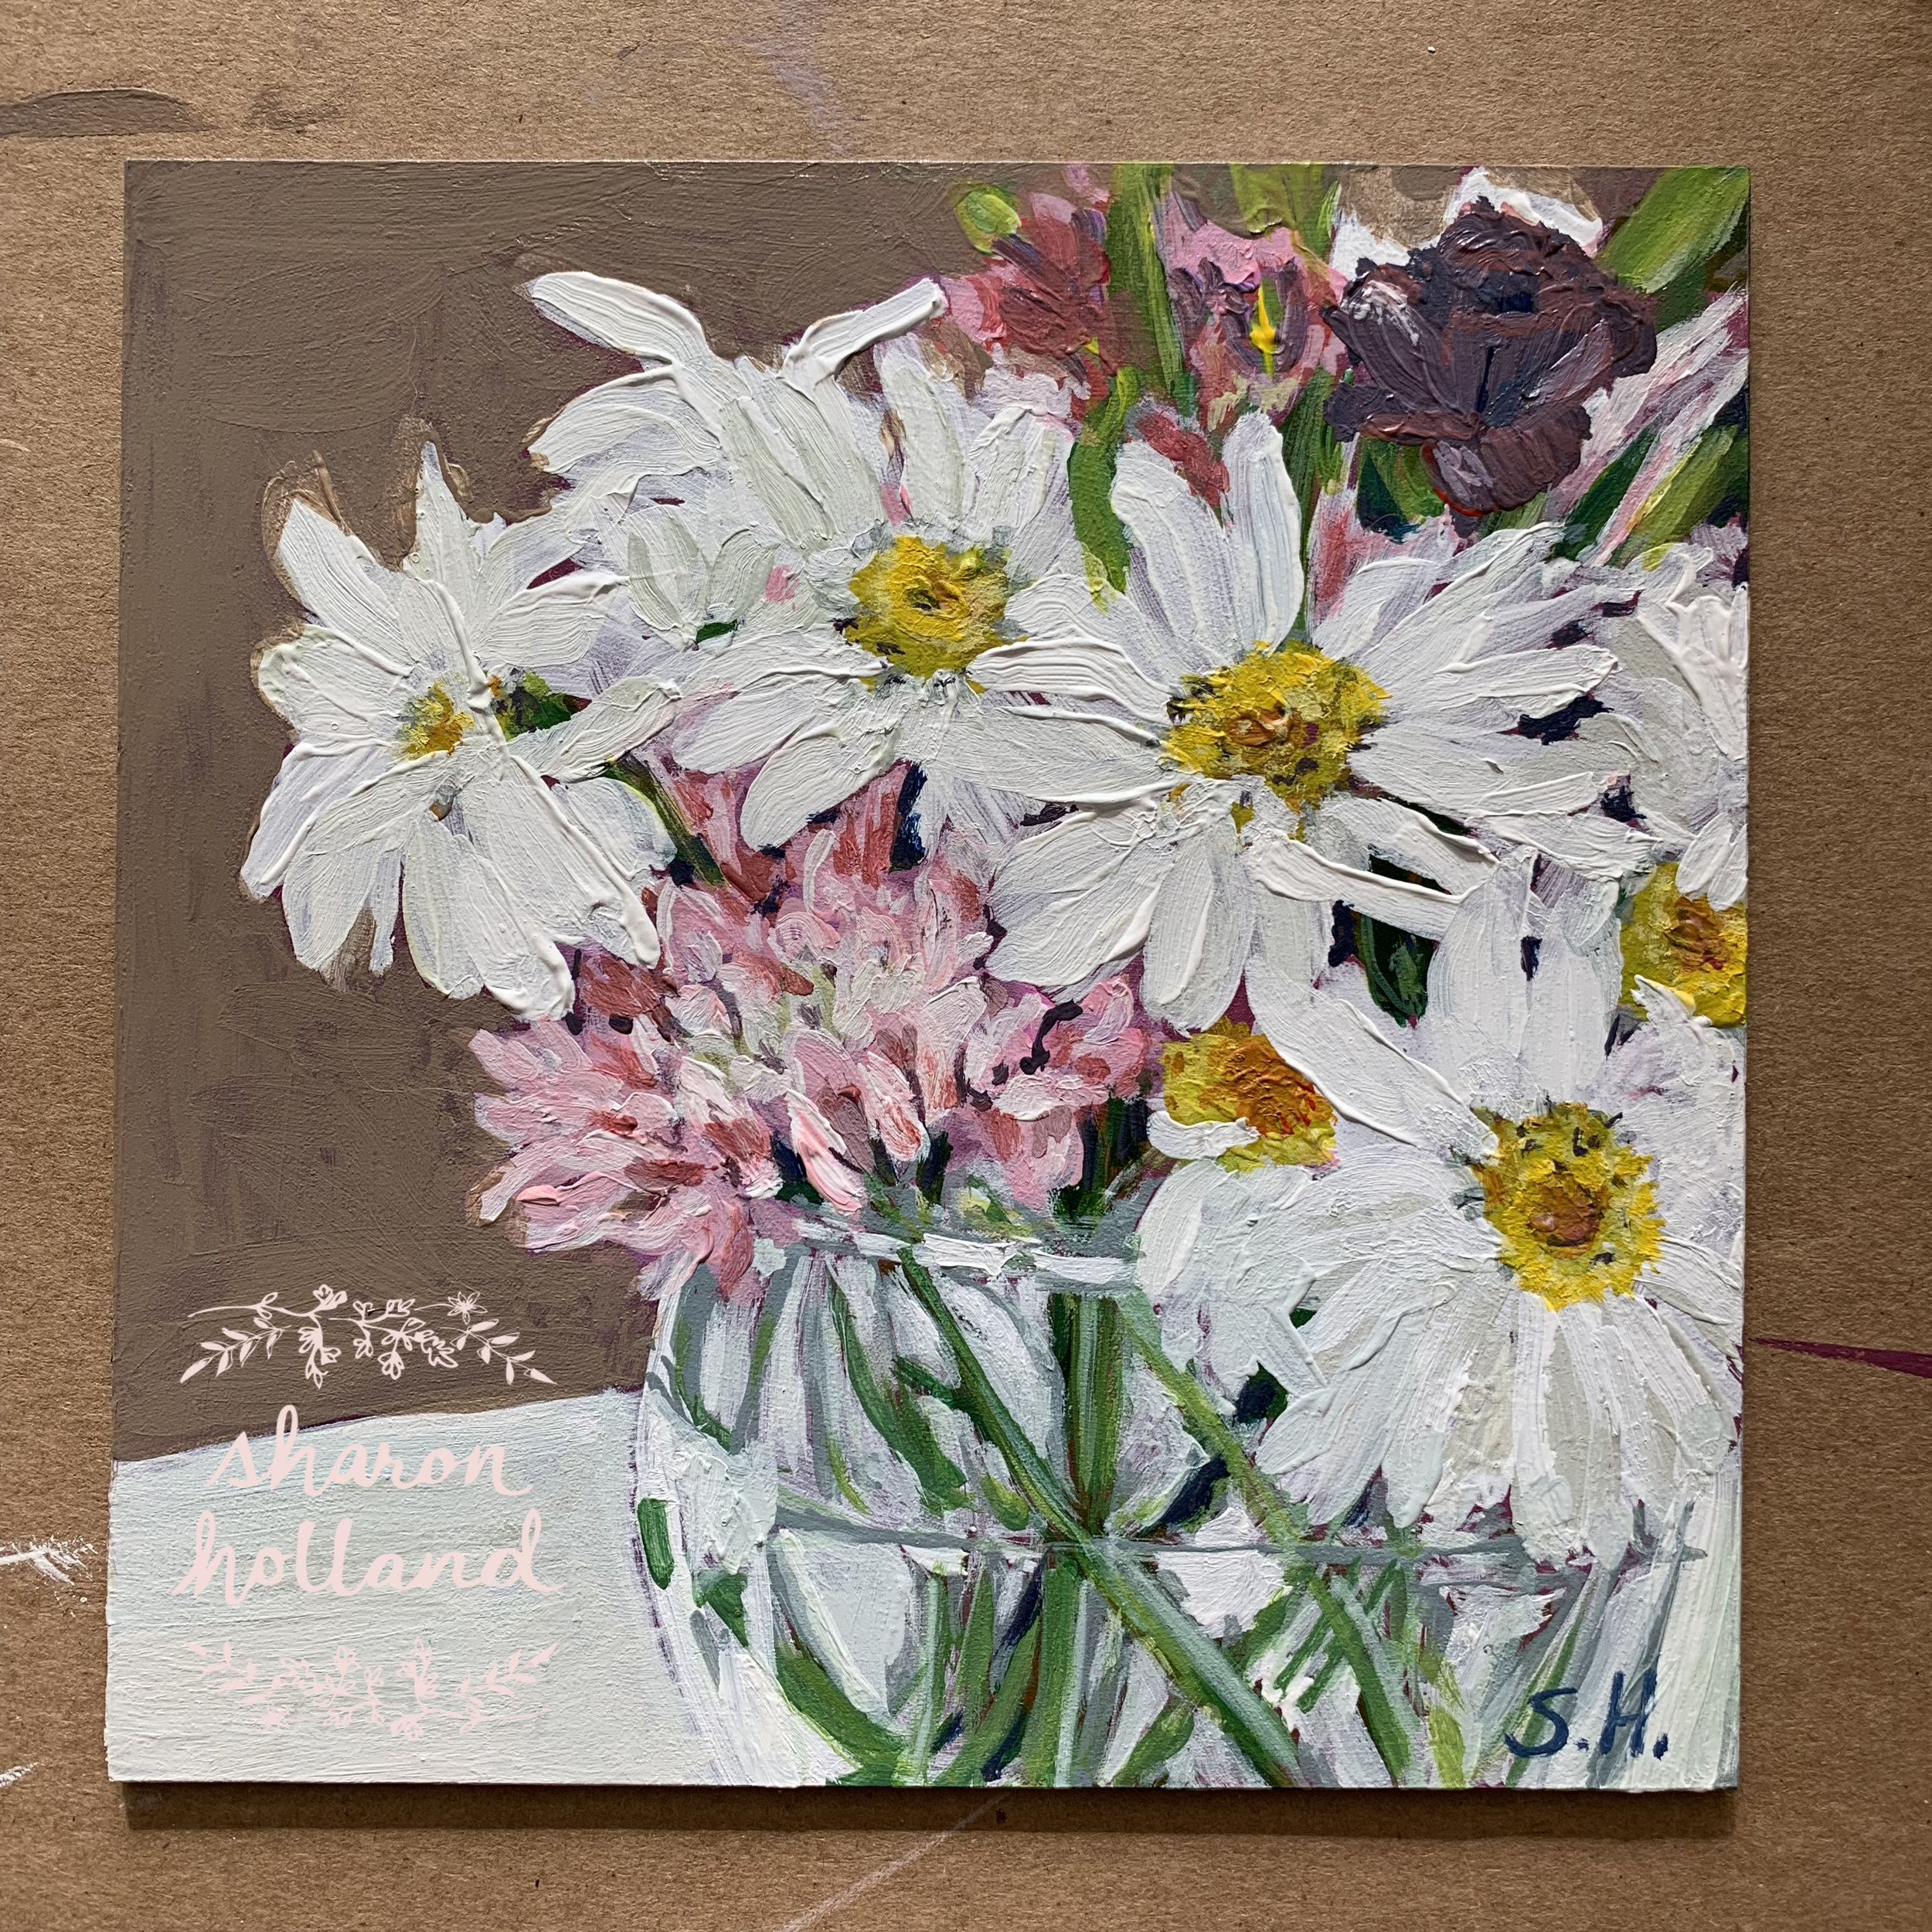 Daisies by Sharon Holland